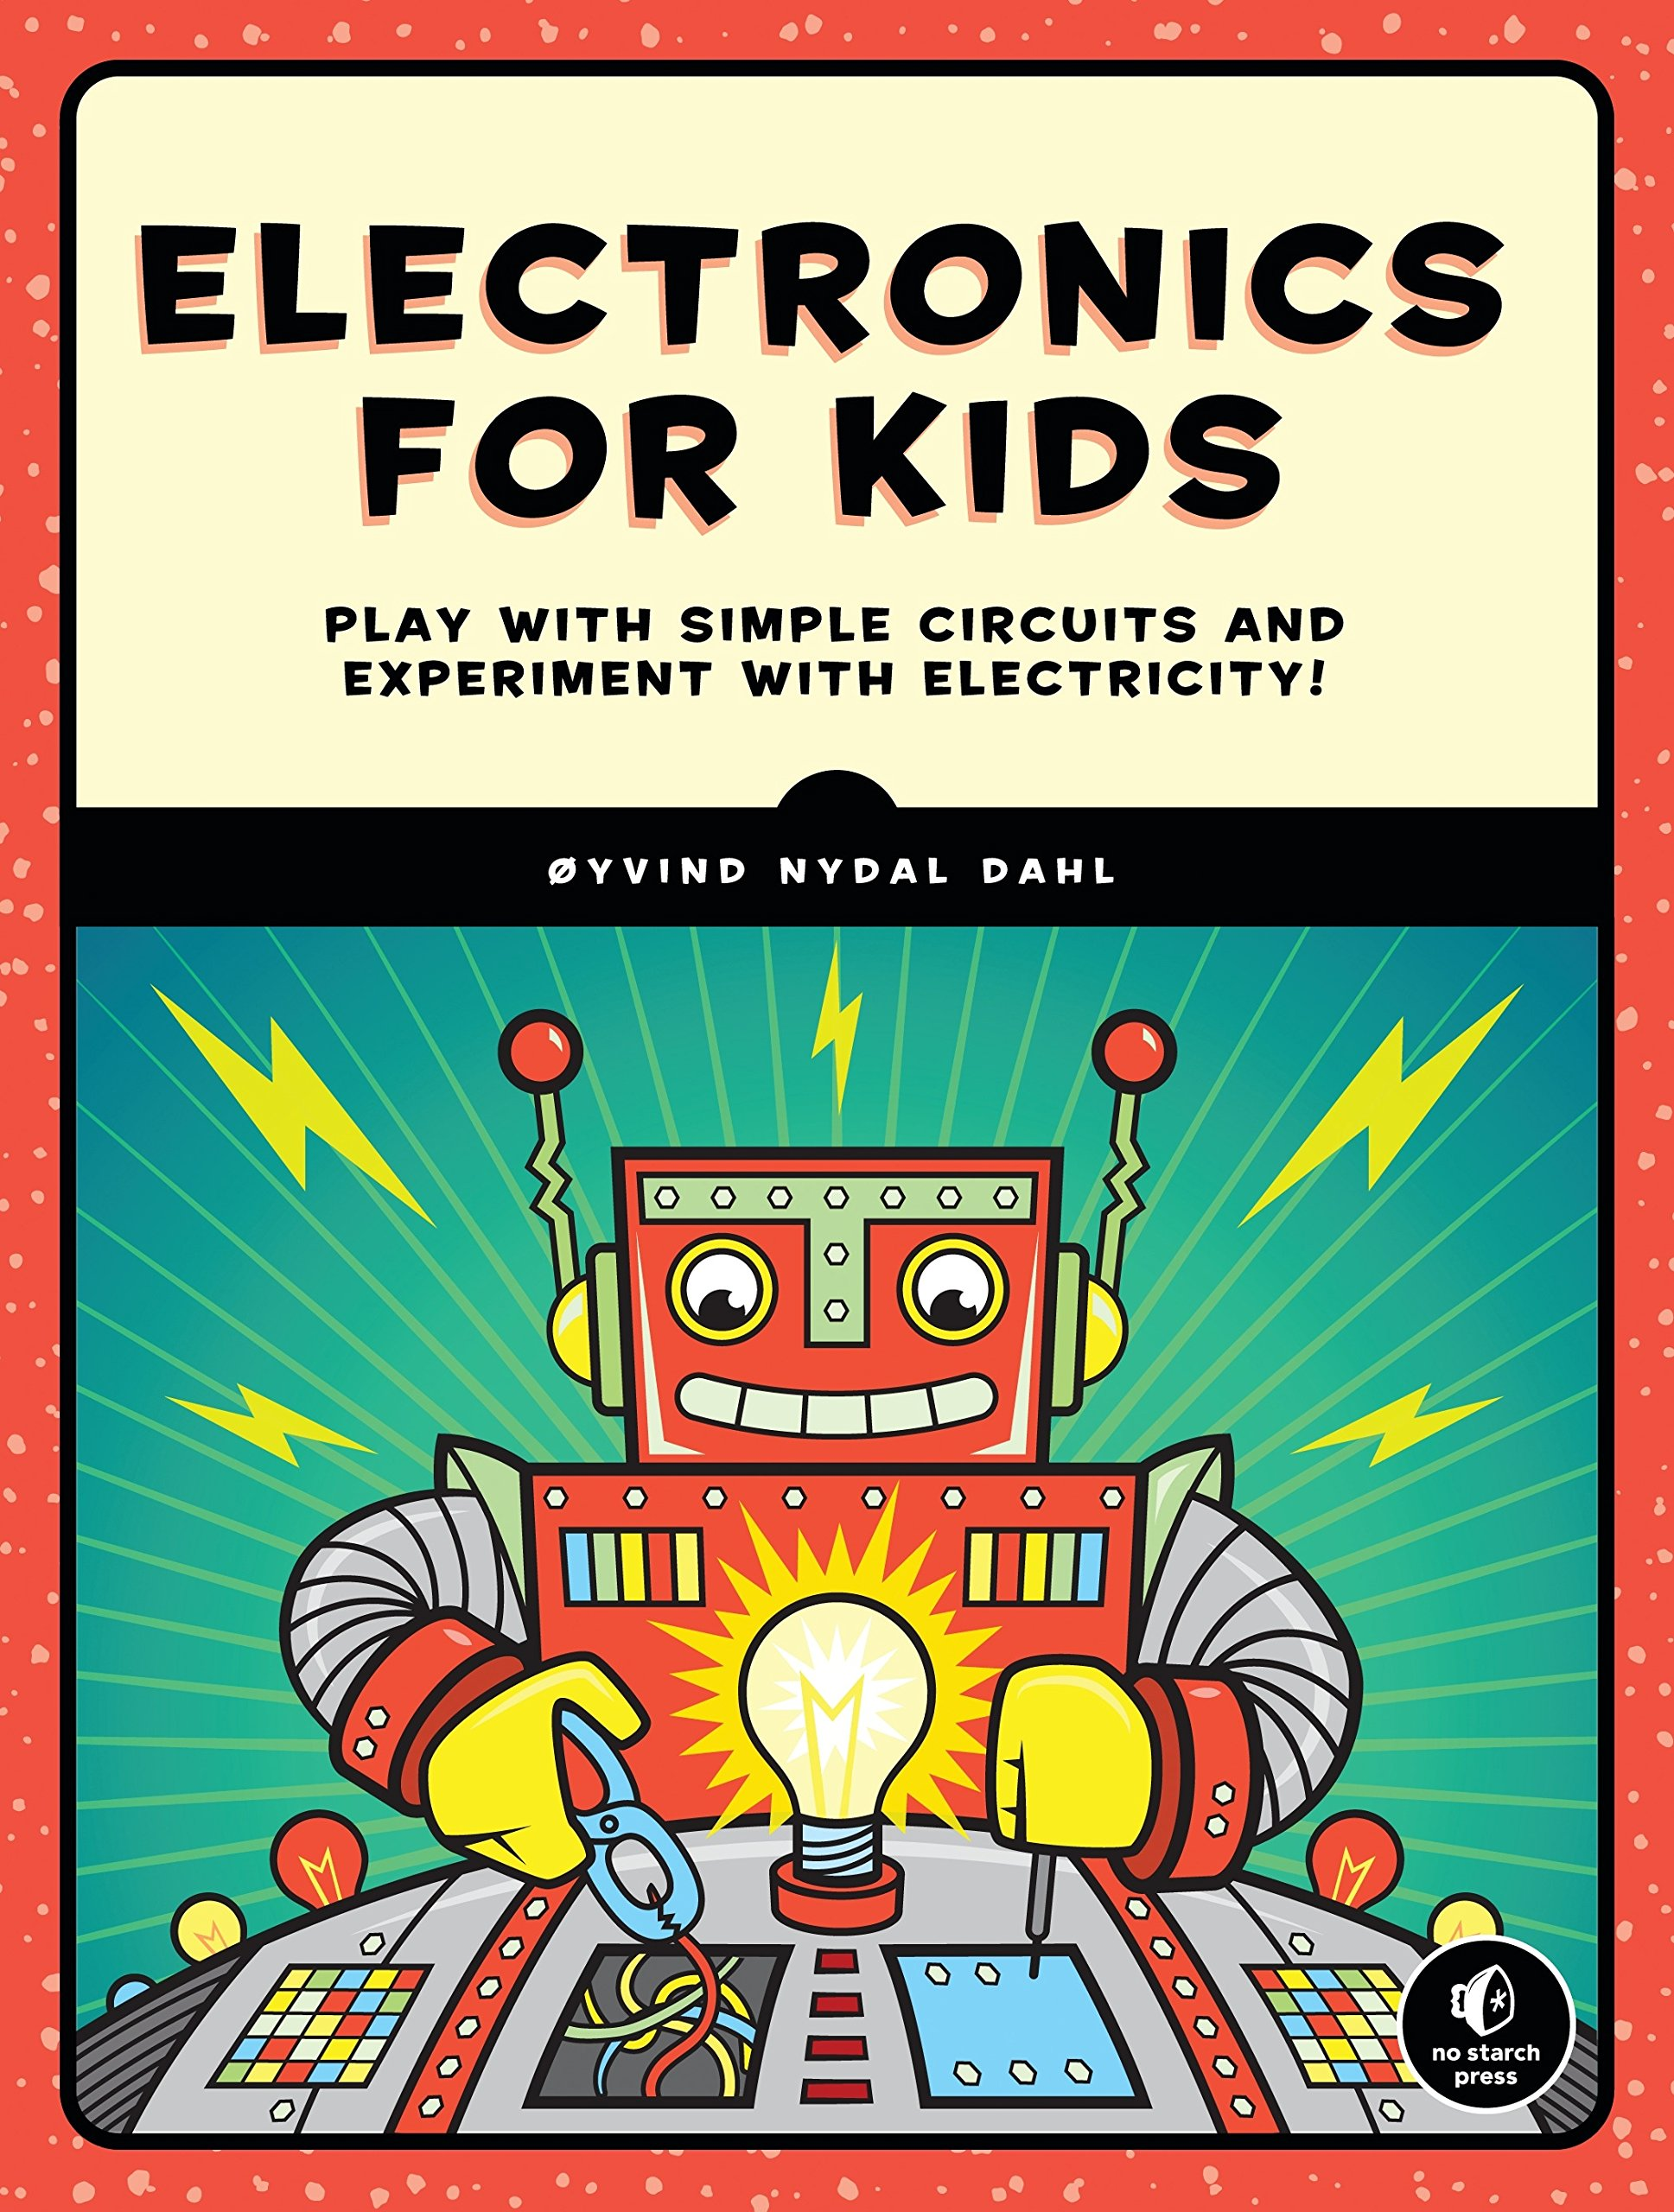 Image OfElectronics For Kids: A Lighthearted Introduction: Play With Simple Circuits And Experiment With Electricity!